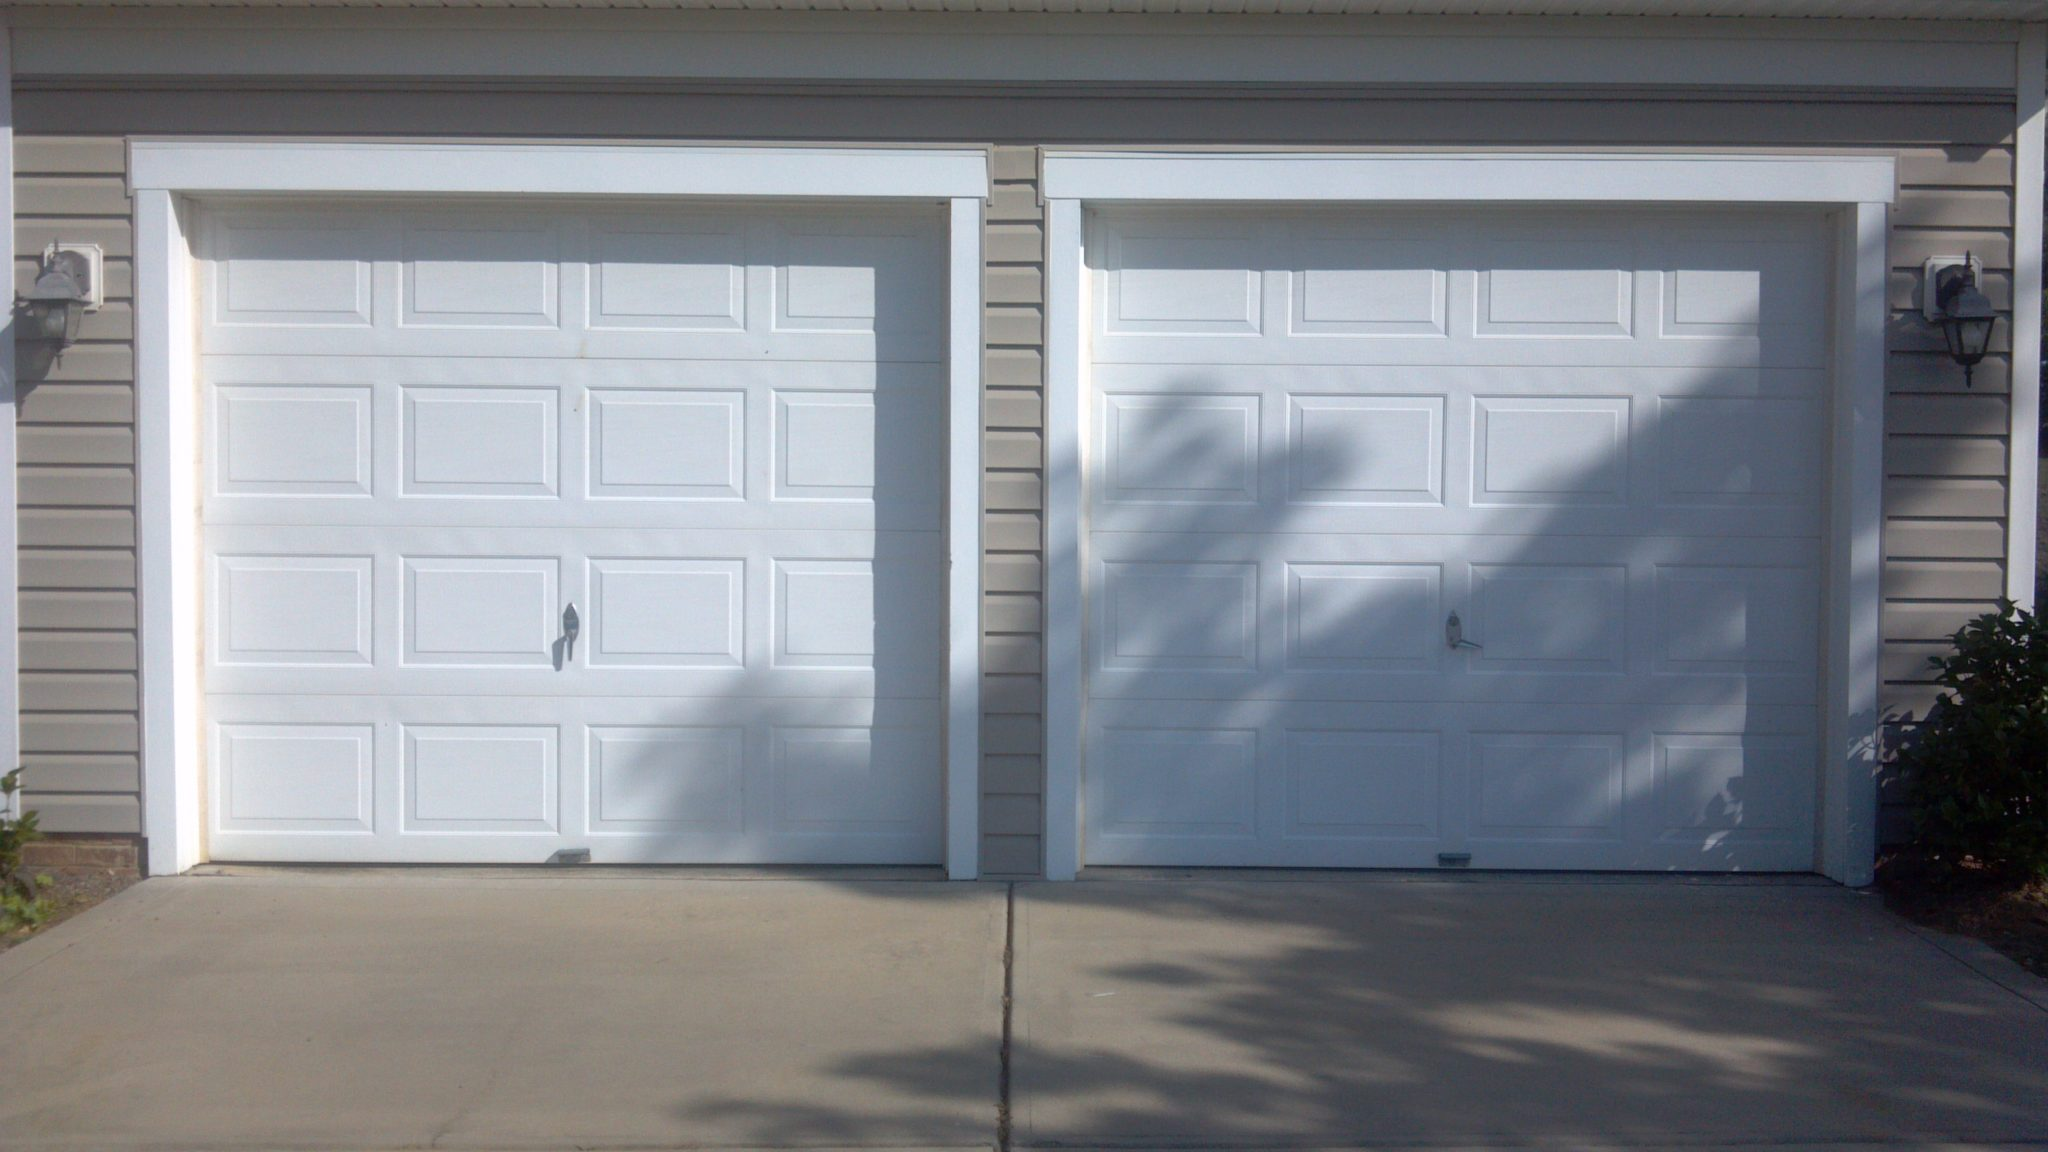 1836 #556276 Two Single Garage Doors Before A Plus Garage Doors picture/photo Garages Doors 36393264